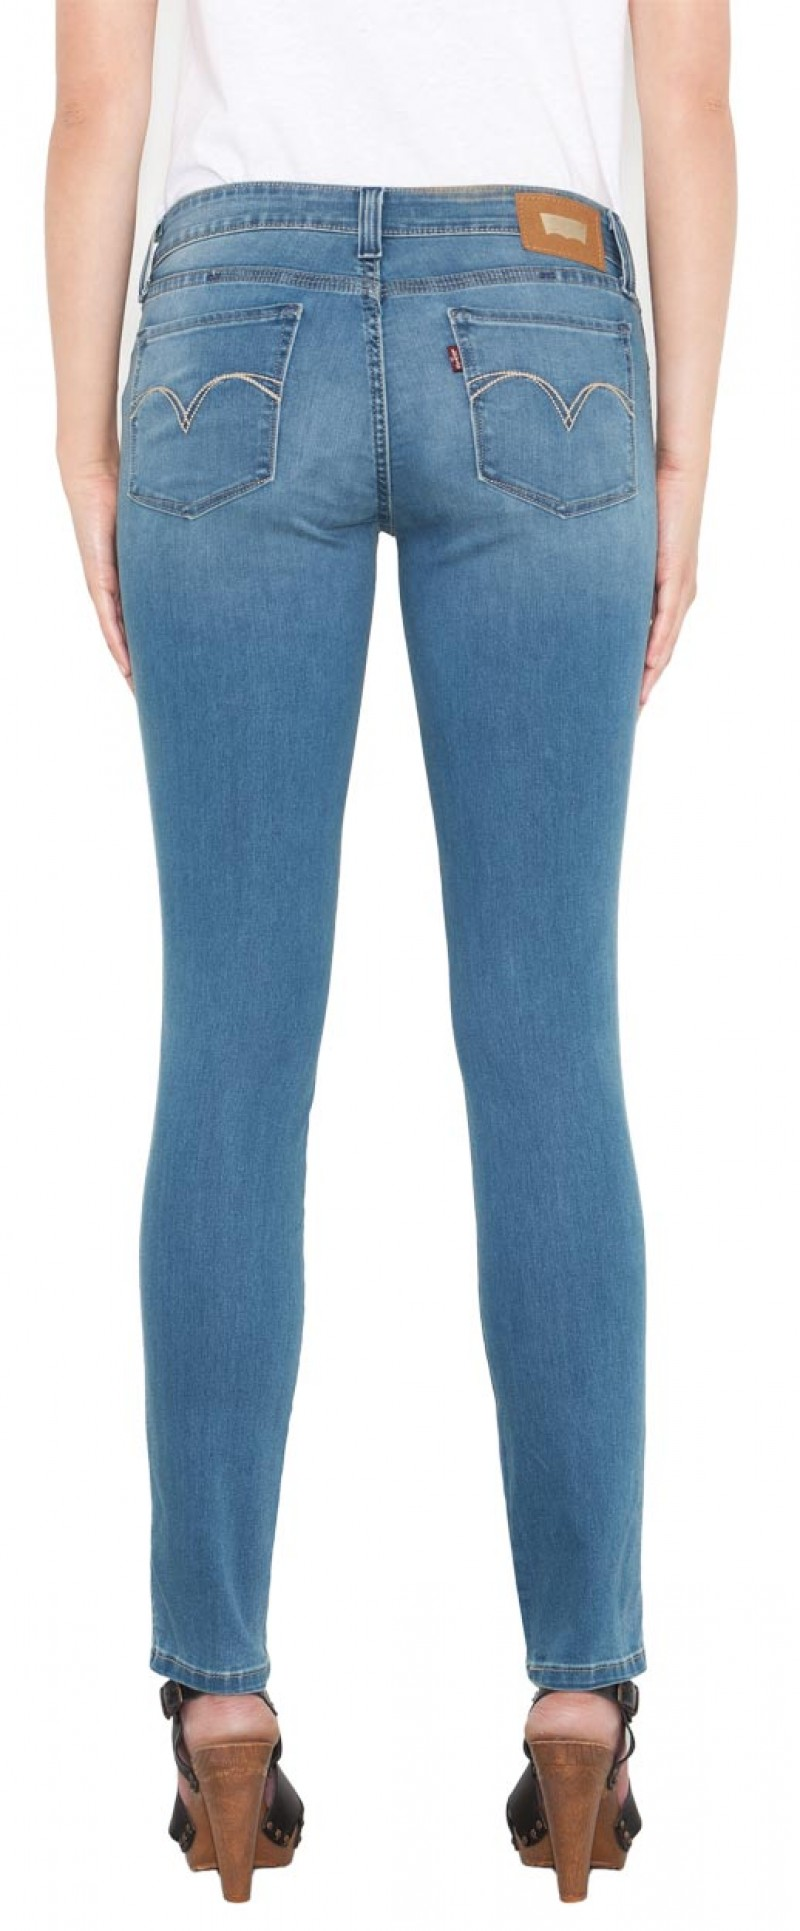 Levis Demi Skinny Jeans  - Low Rise - Sky Blue